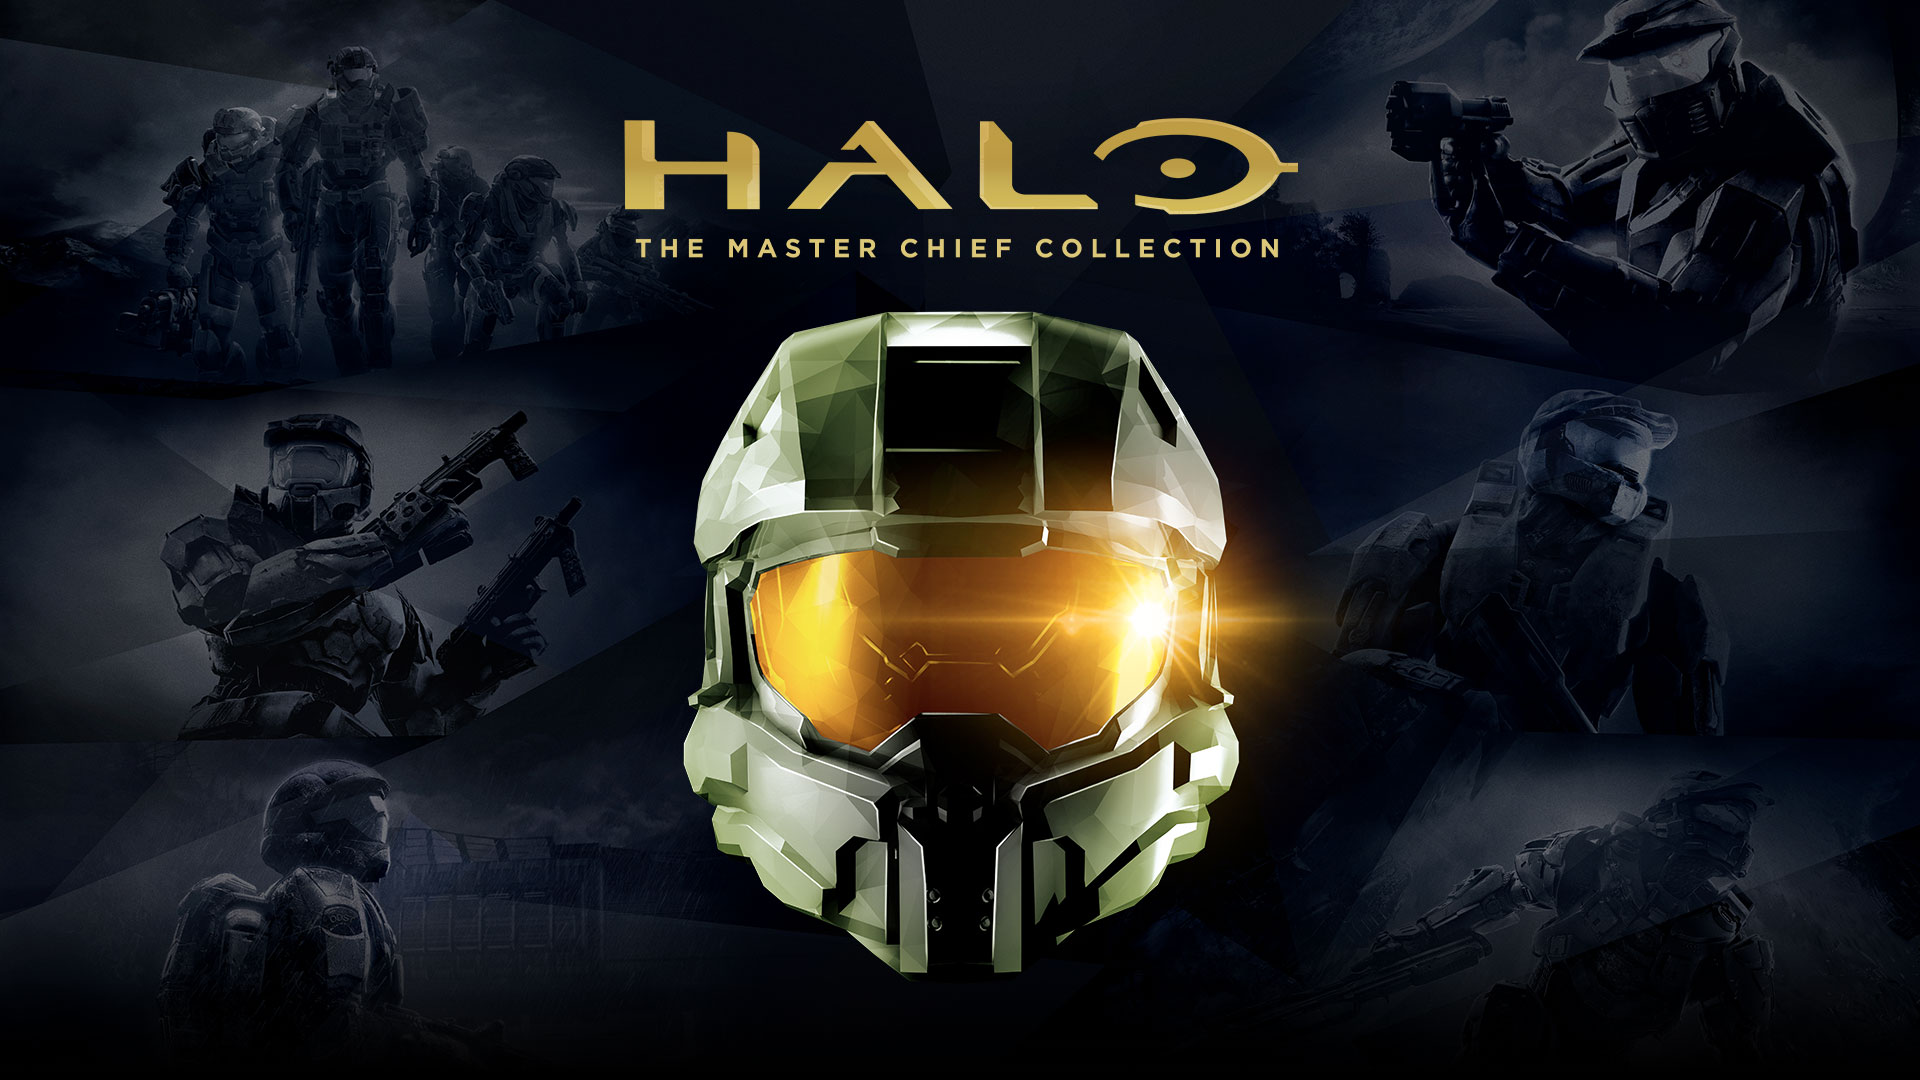 Halo: The Master Chief Collection キービジュアル